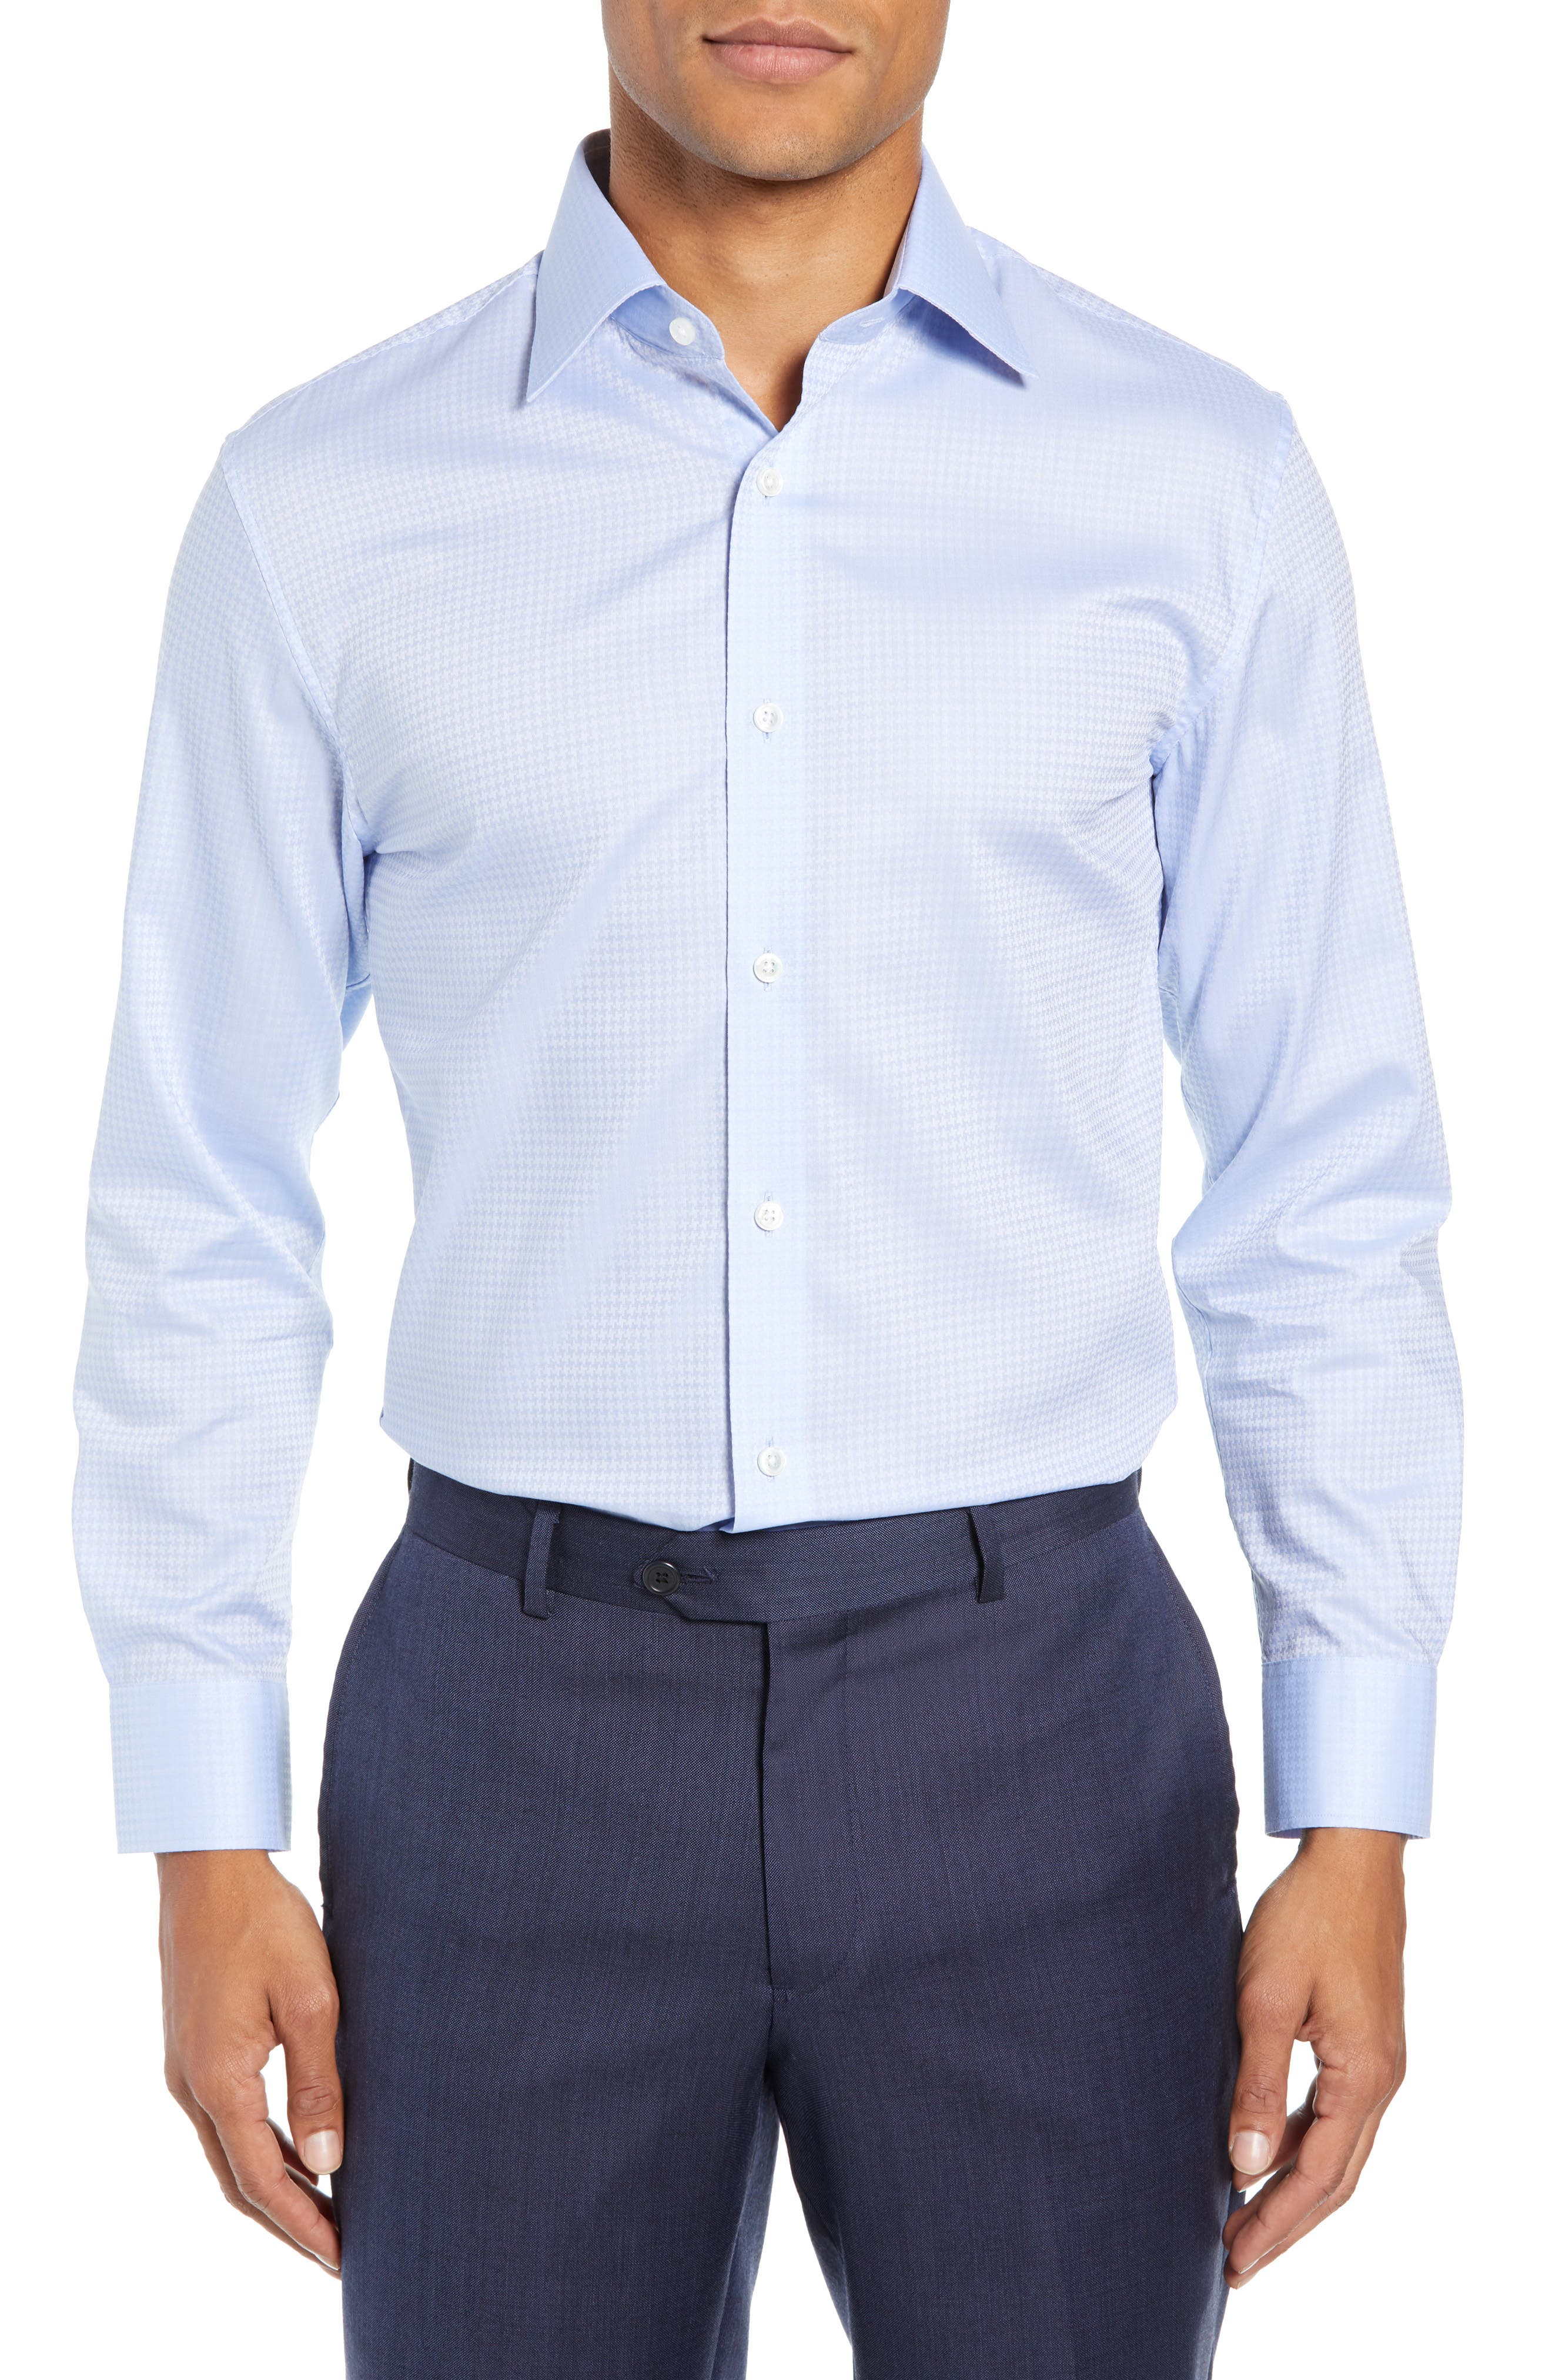 Swiss Performance Clifton Slim Fit Houndstooth Dress Shirt,                         Main,                         color, CANNES BLUE